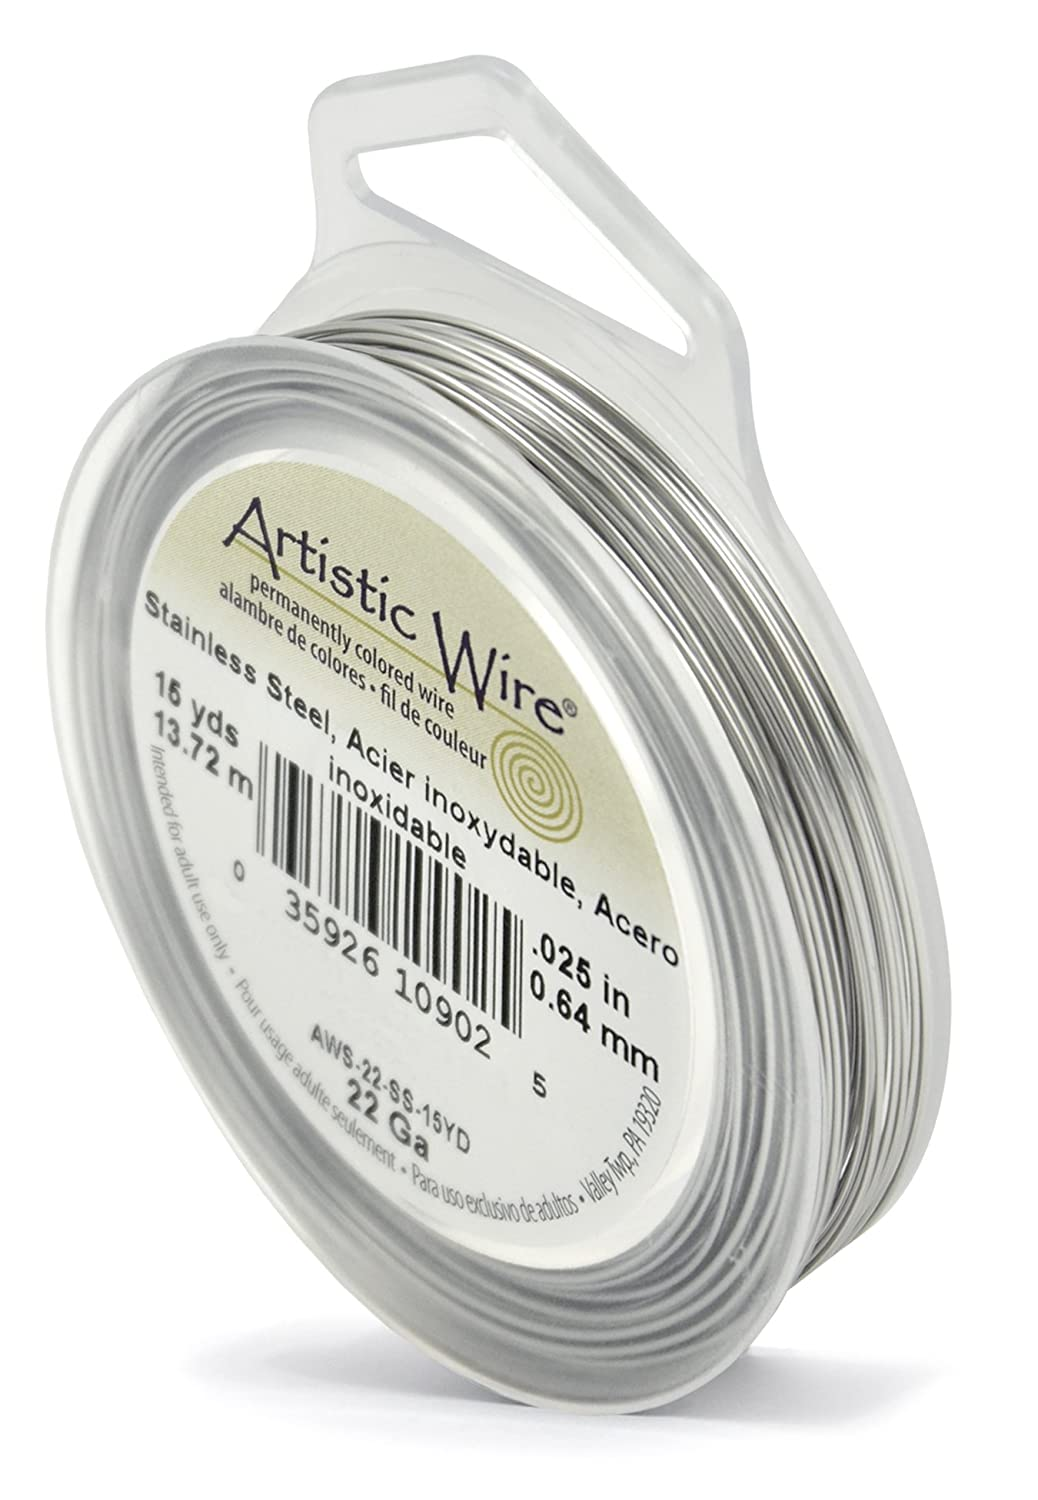 Amazon.com: Beadalon AWS-22-SS-15YD 22 Gauge Artistic Wire ...